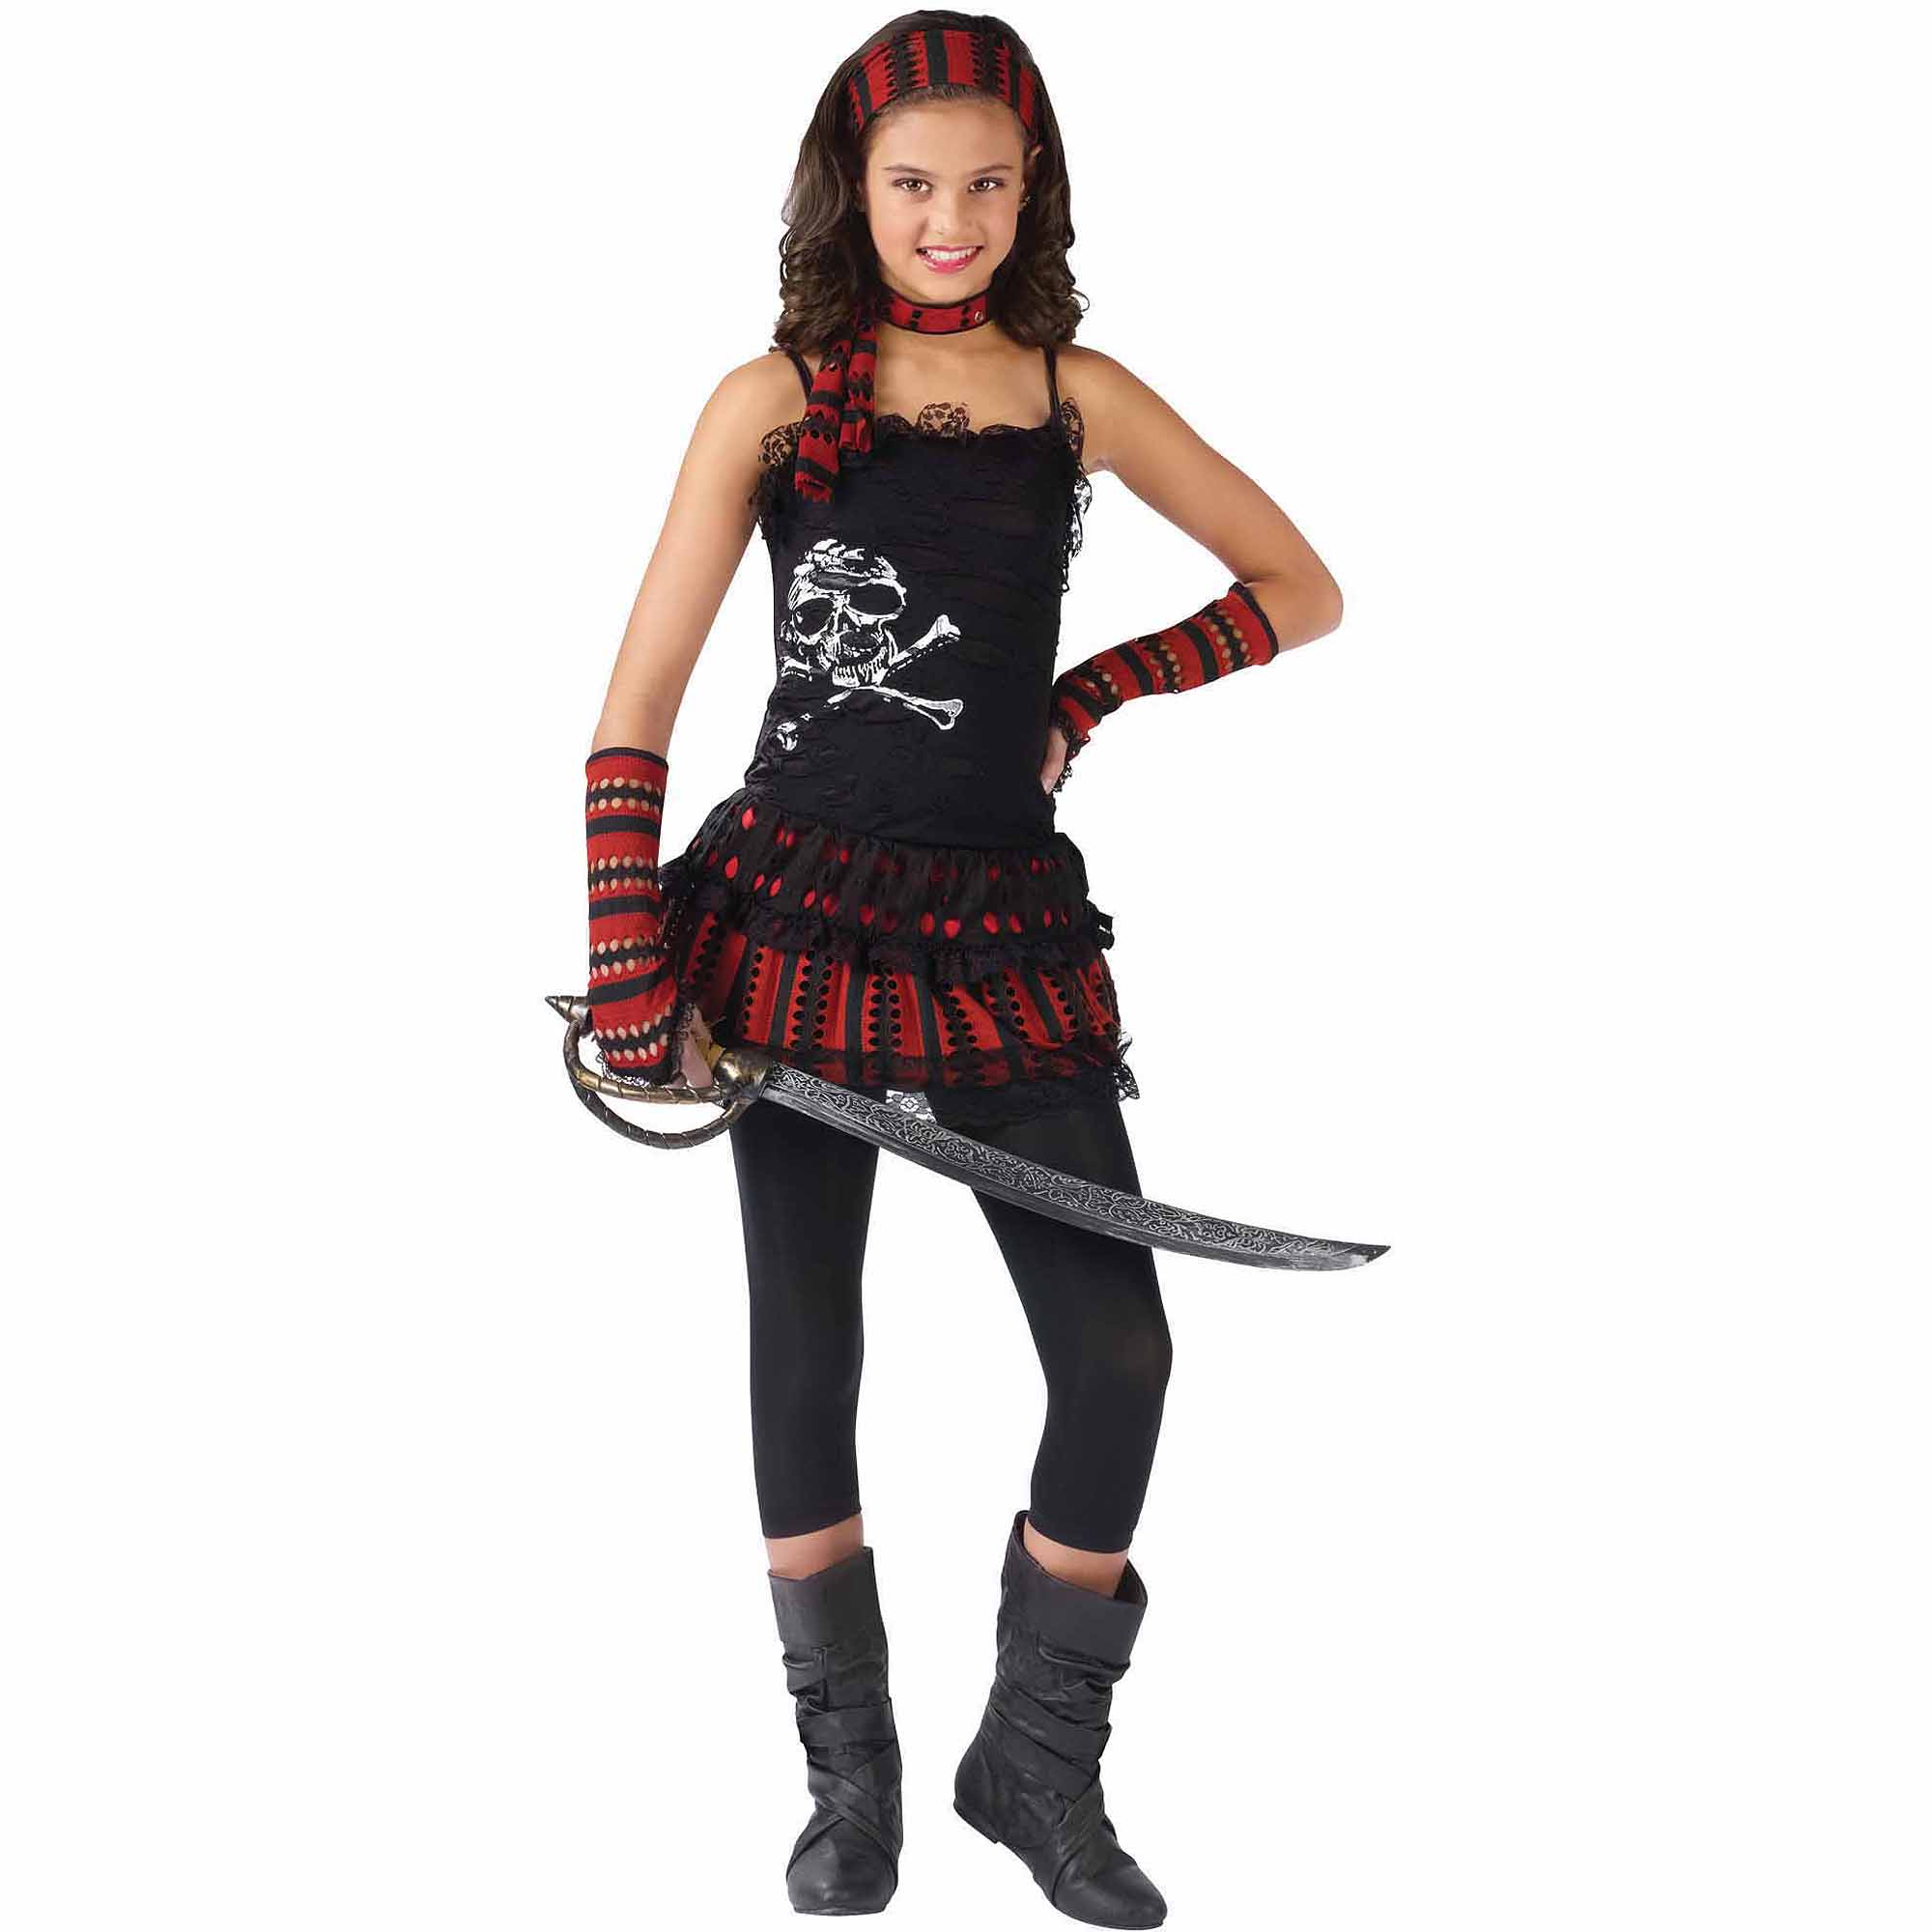 Pirate Skull Rocker Child Halloween Costume by Fun World